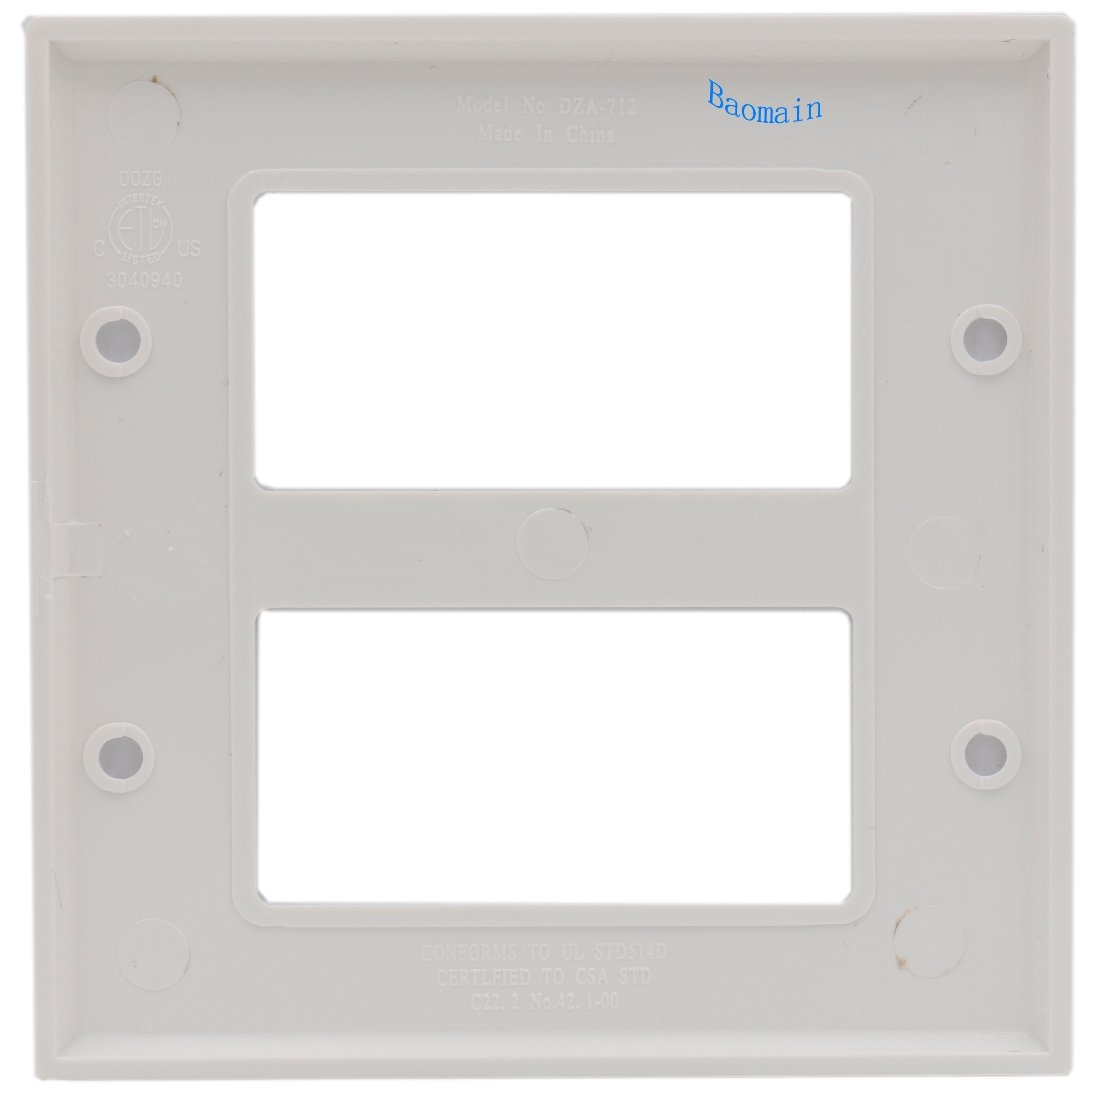 2-Gang Standard Size,Coverplate White 2Pack Baomain Electric Co Ltd Baomain Screw Decorator Switch Wall Plate DZA-712 Wallplate